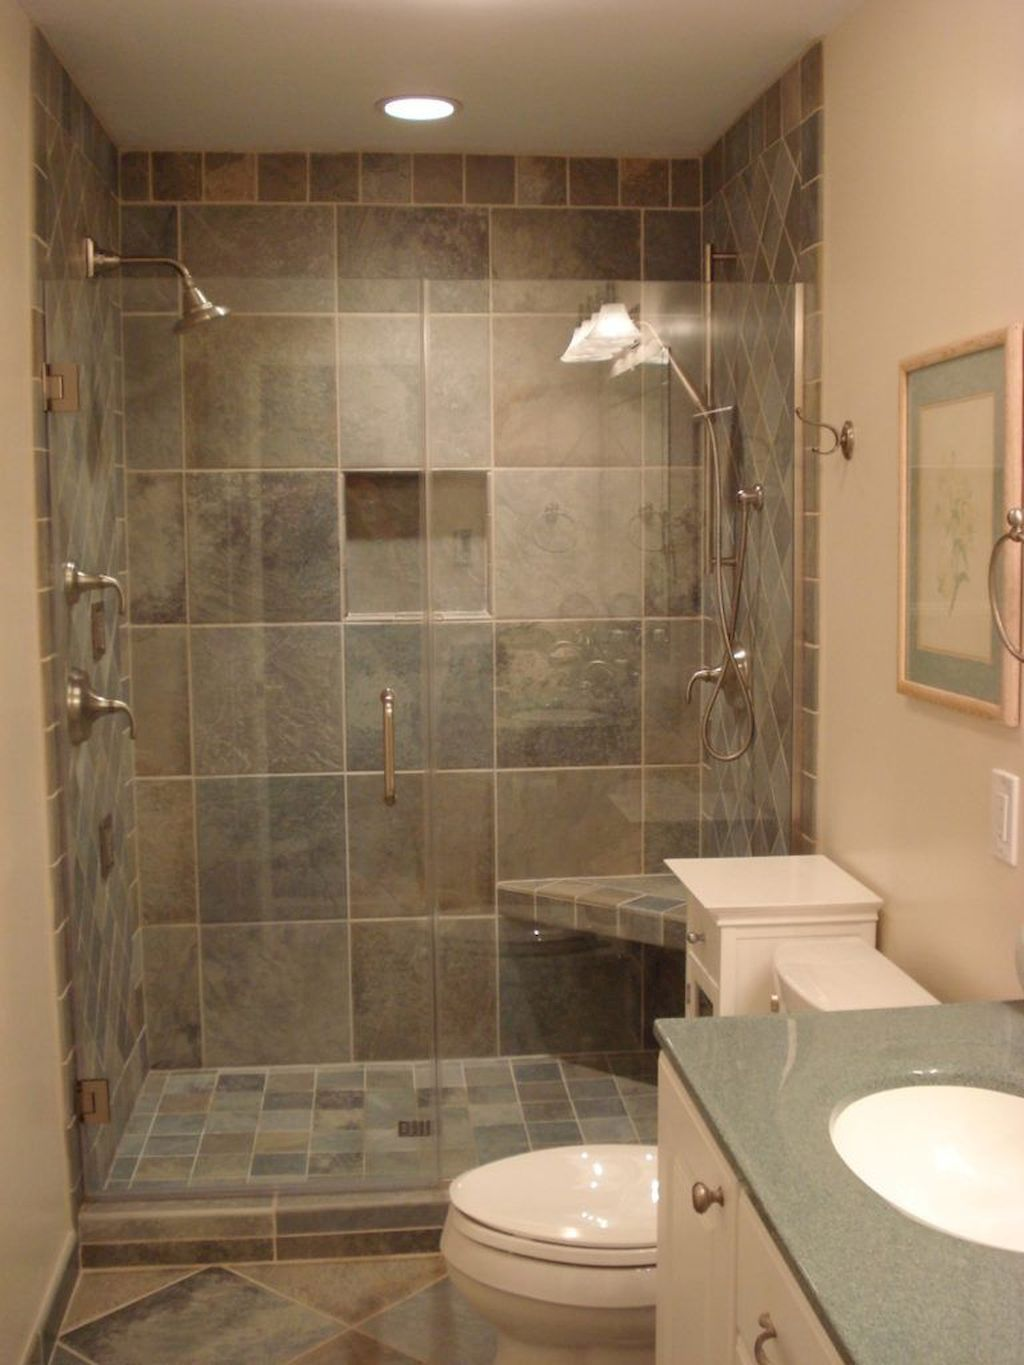 Pin By Jenny Jones On For The Home Small Bathroom Renovations